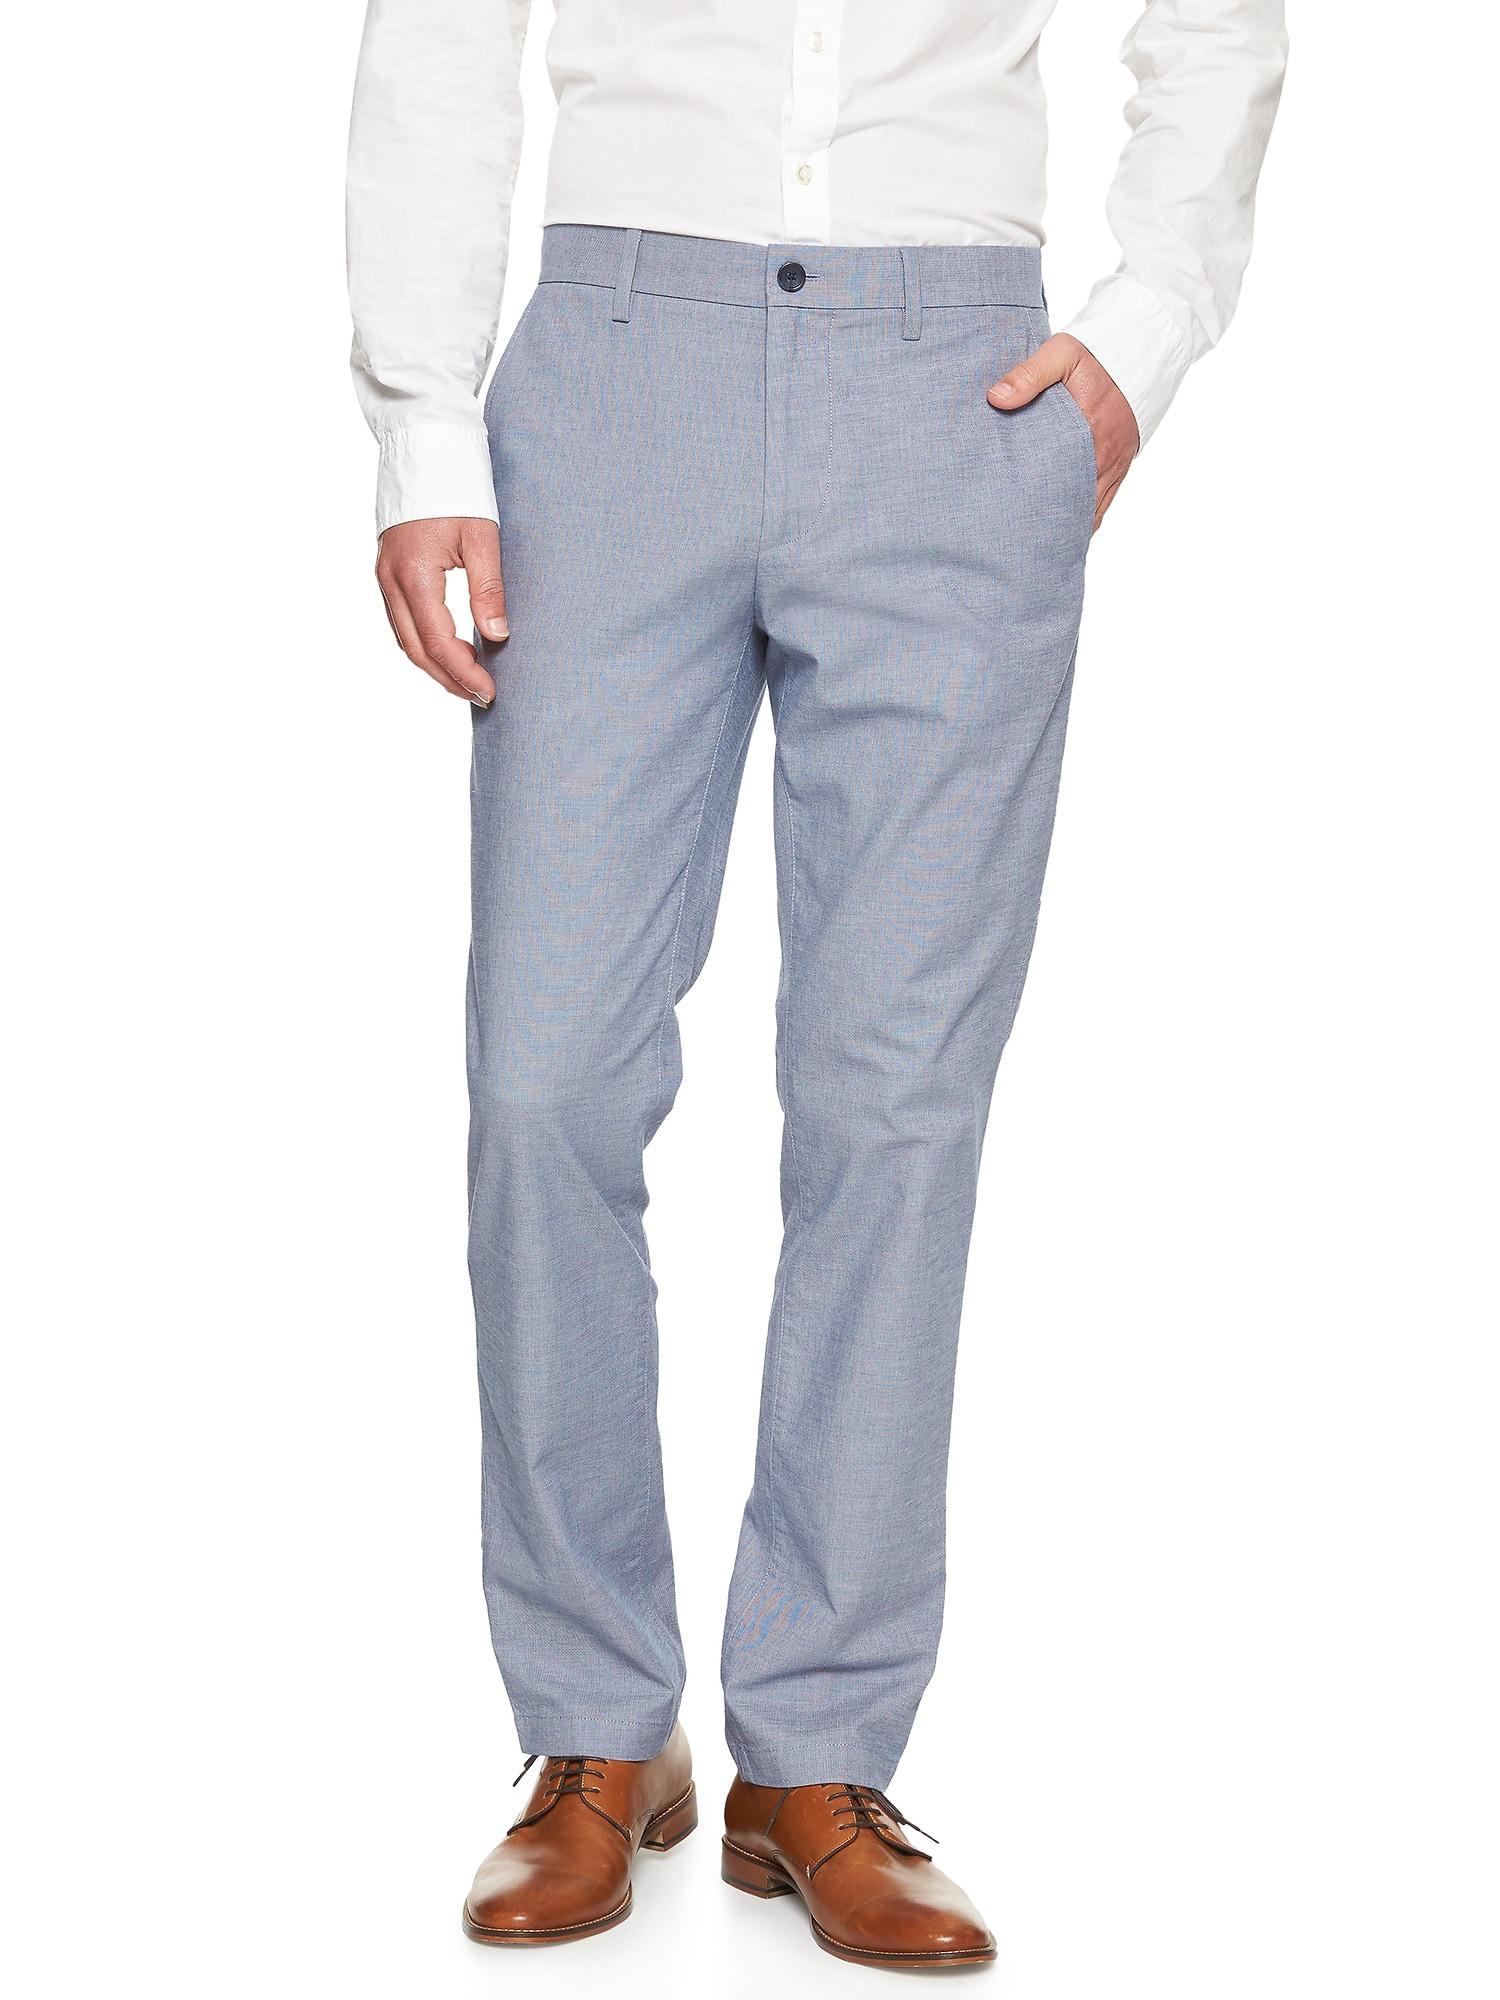 Banana Republic Mens Aiden-Fit Stretch Textured Trouser Black Pants Brand New